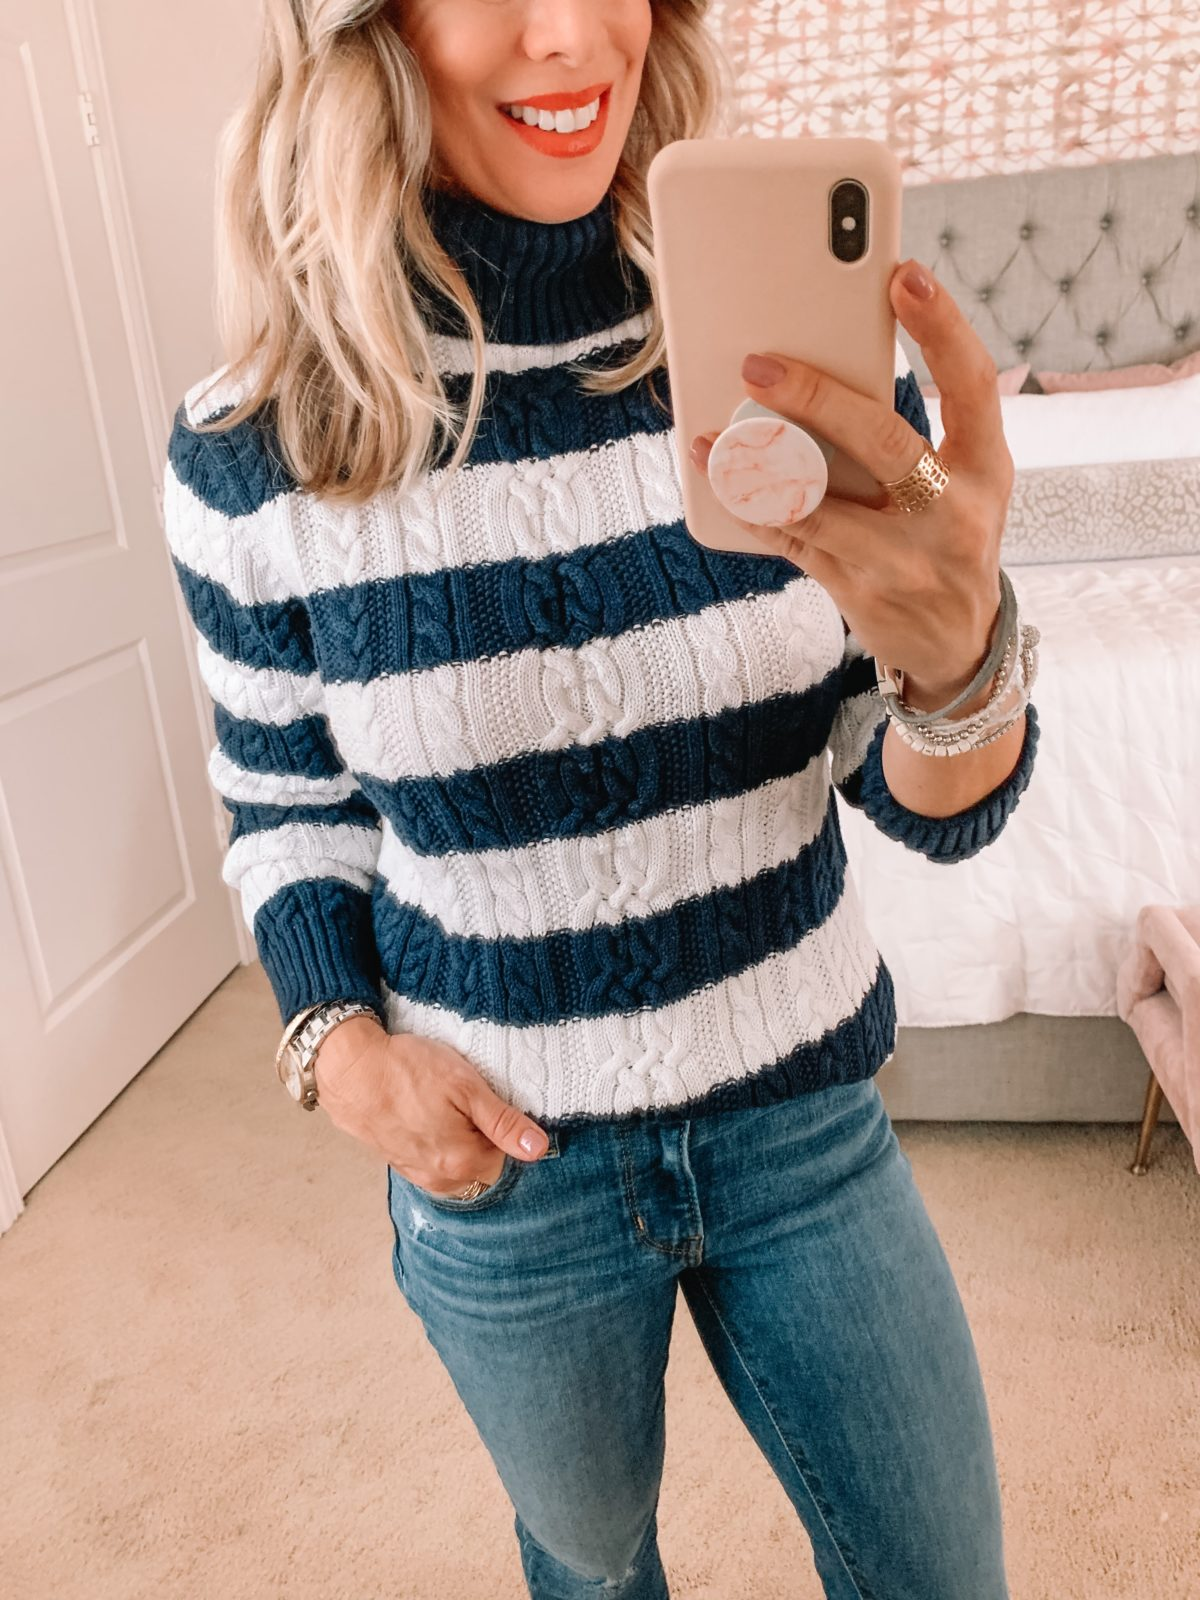 Amazon Fashion Faves, Striped Sweater, jeans, Booties